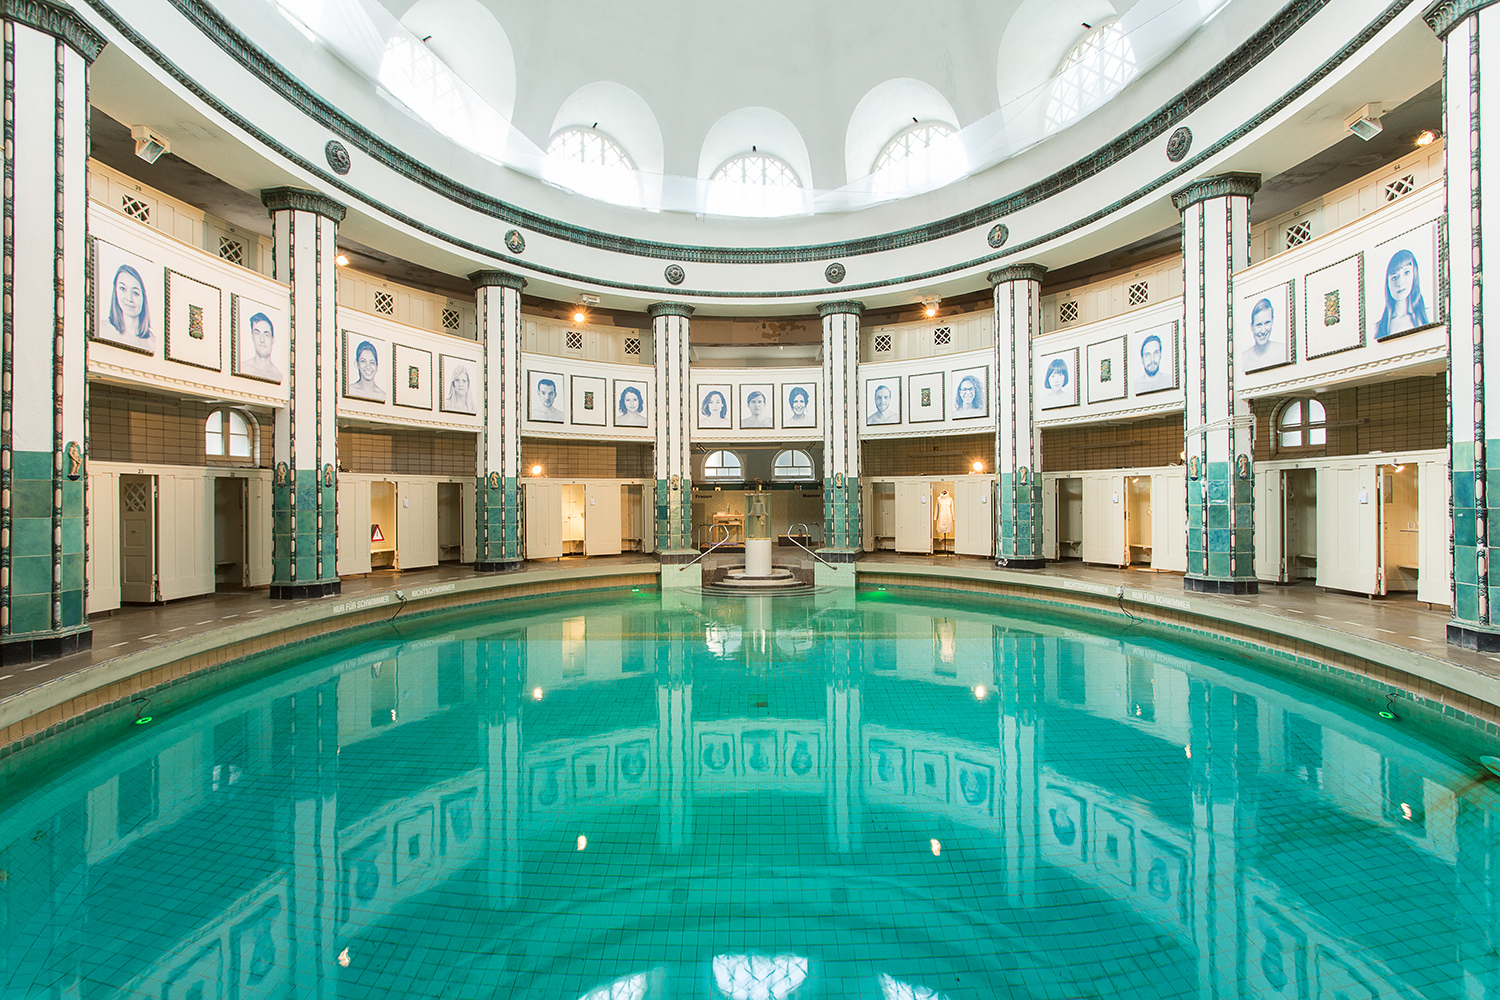 Designpreis Halle 2014 — Venue: Historic baths, the Stadtbad